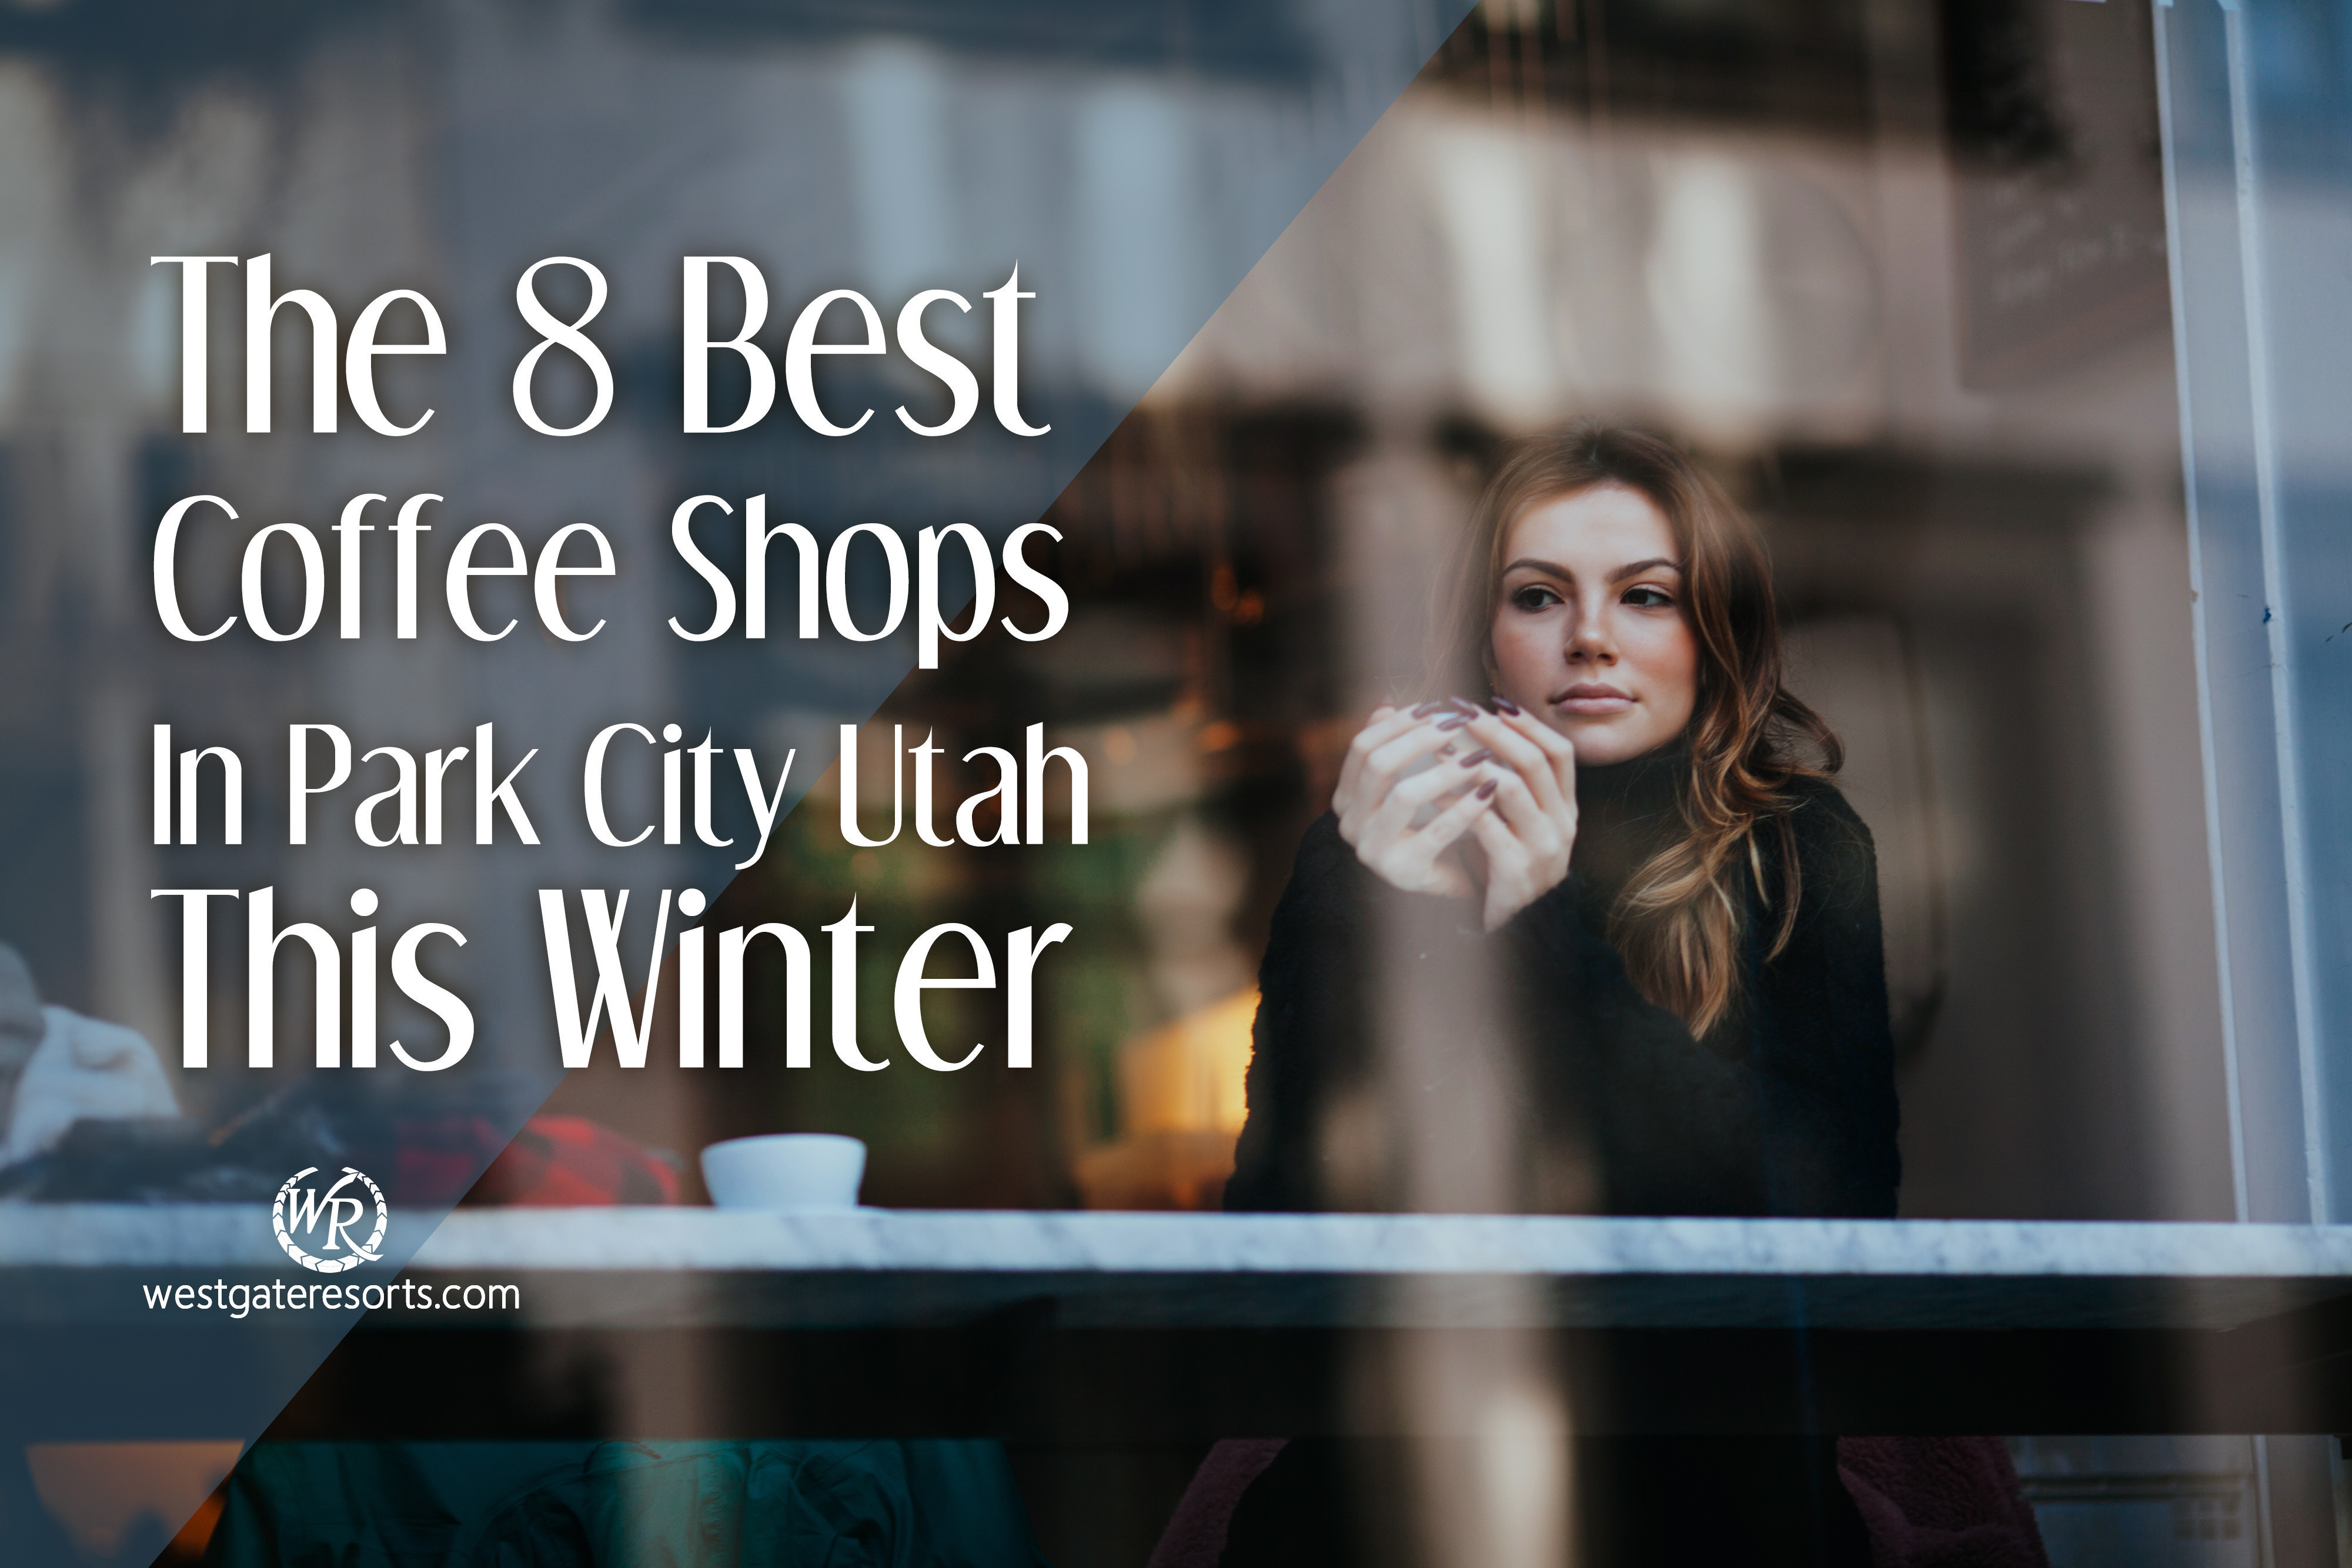 The 8 Best Coffee Shops In Park City Utah This Winter | Park City Coffee Shops